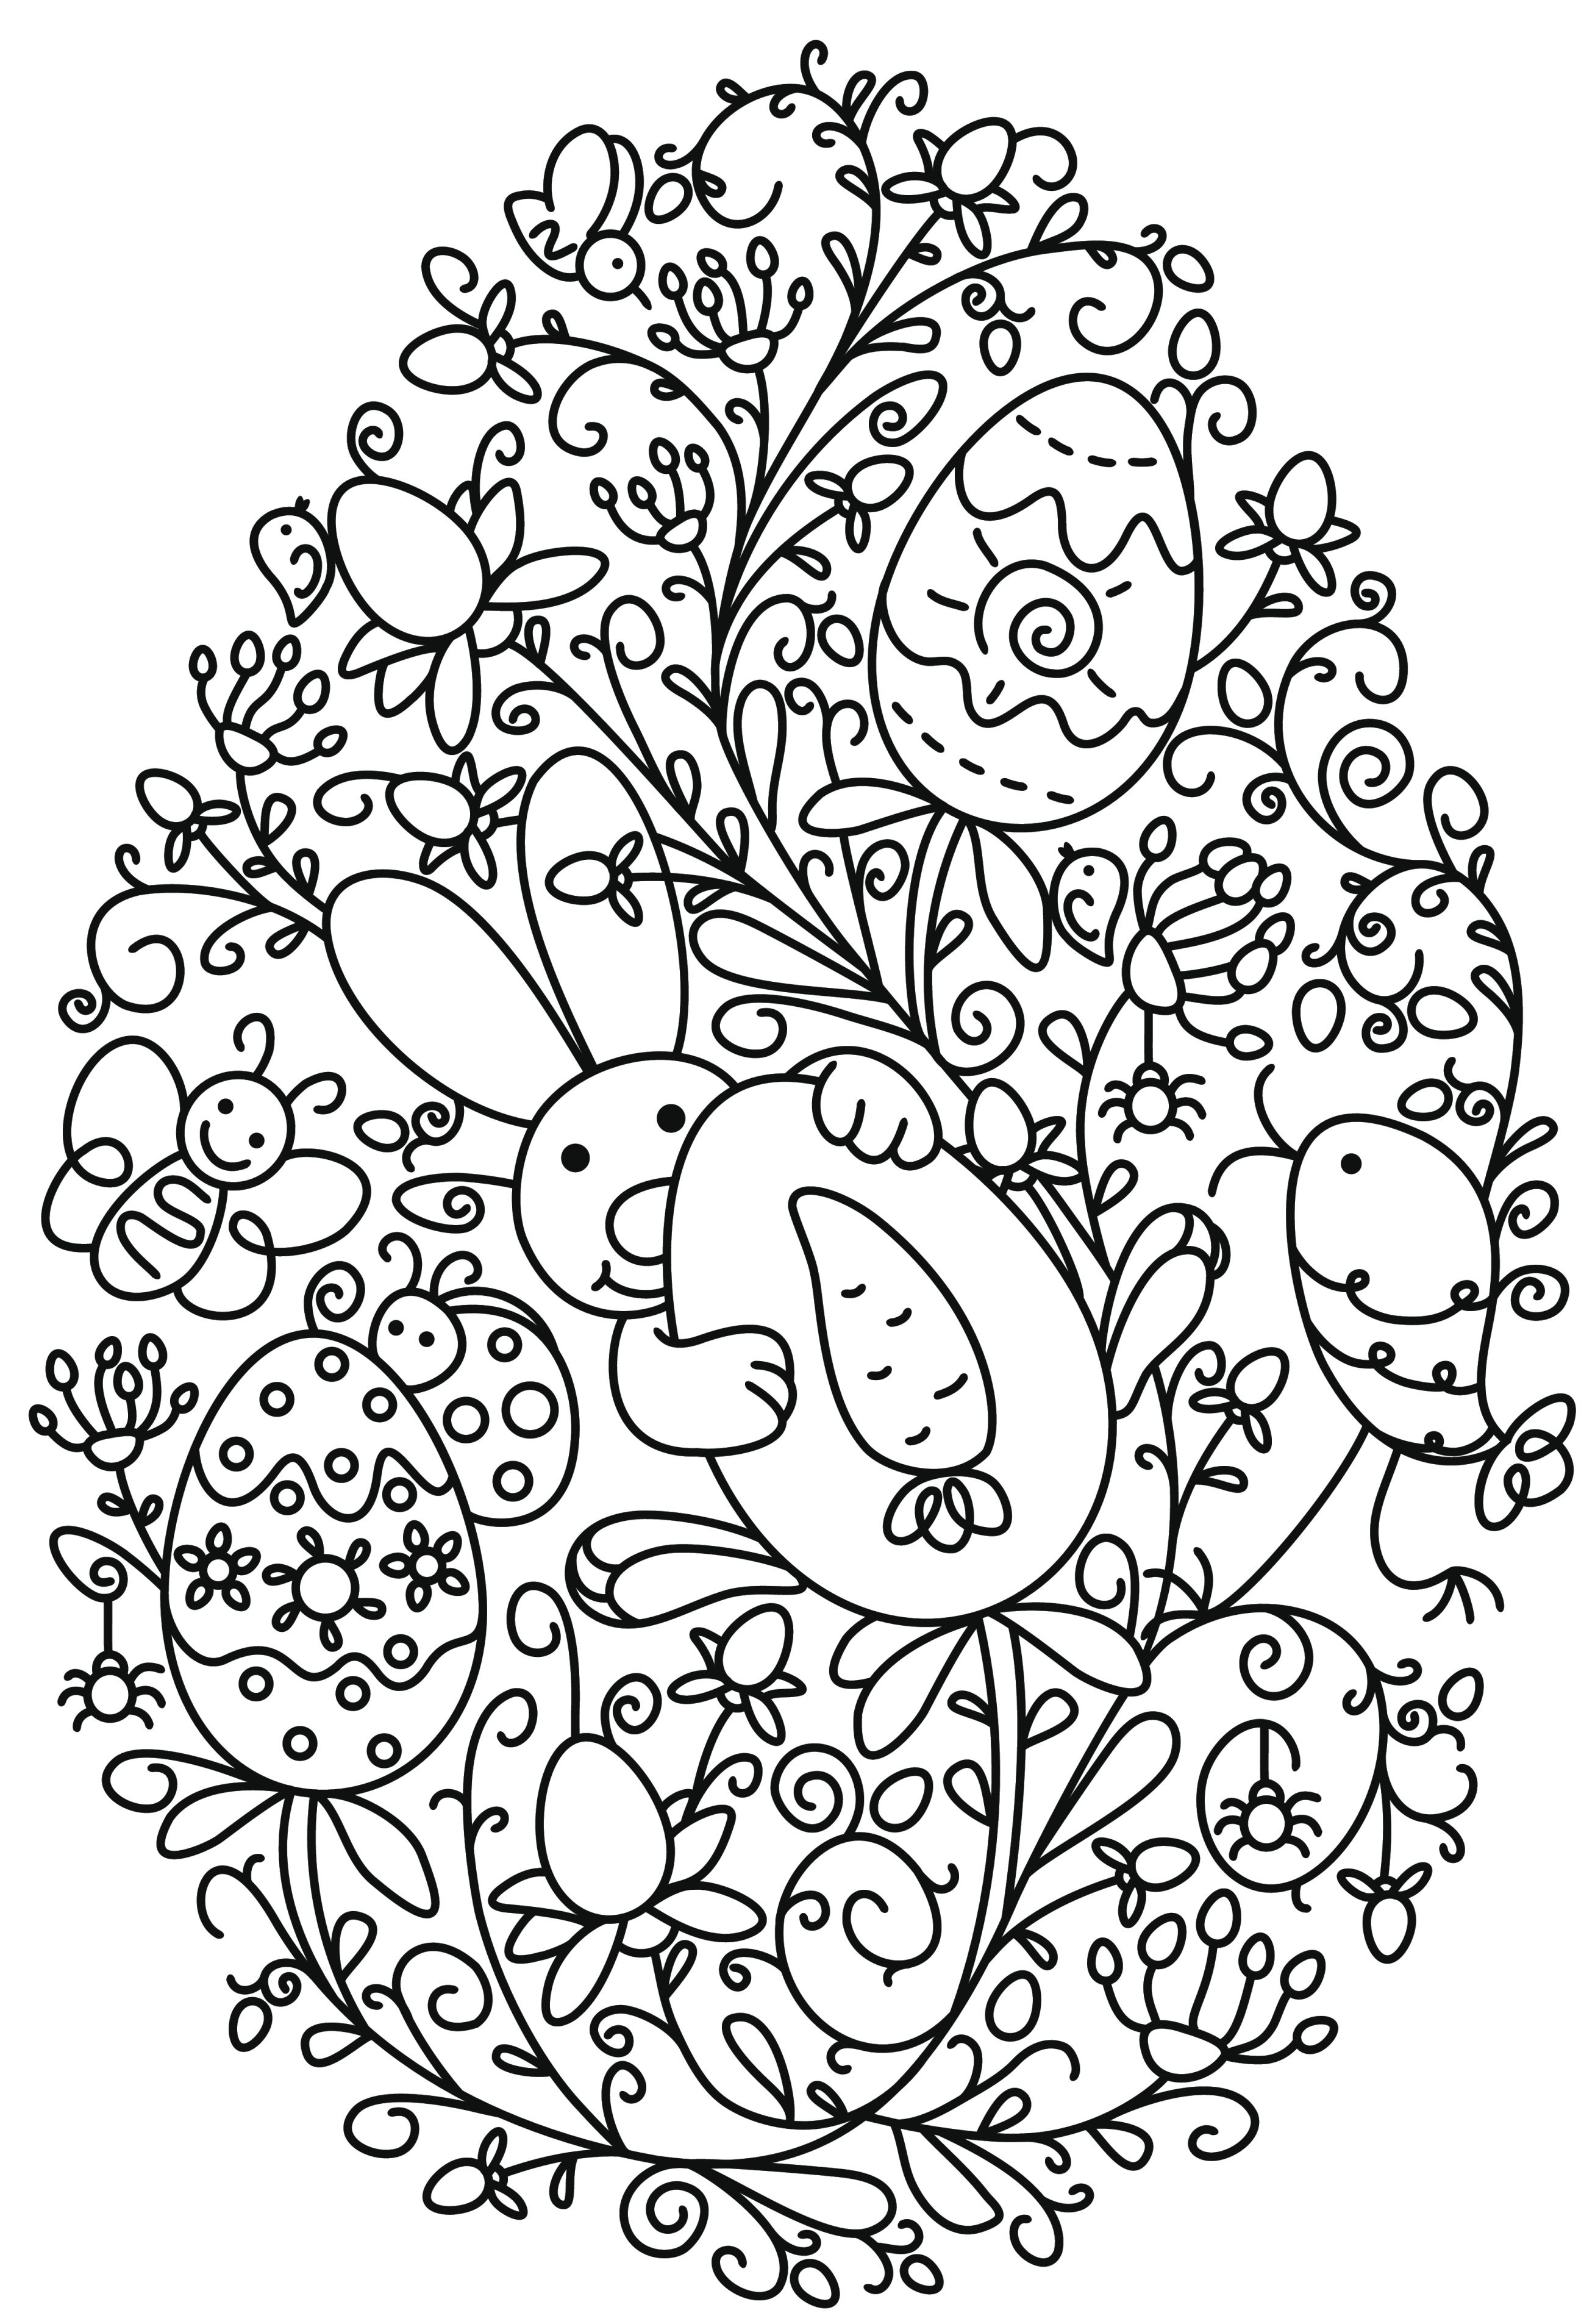 Imagen De Http Entrepadres Imujer Com Sites Entrepadres Imujer Com Files Dibujos Para Colorear De Coloring Easter Eggs Easter Coloring Pages Easter Colouring